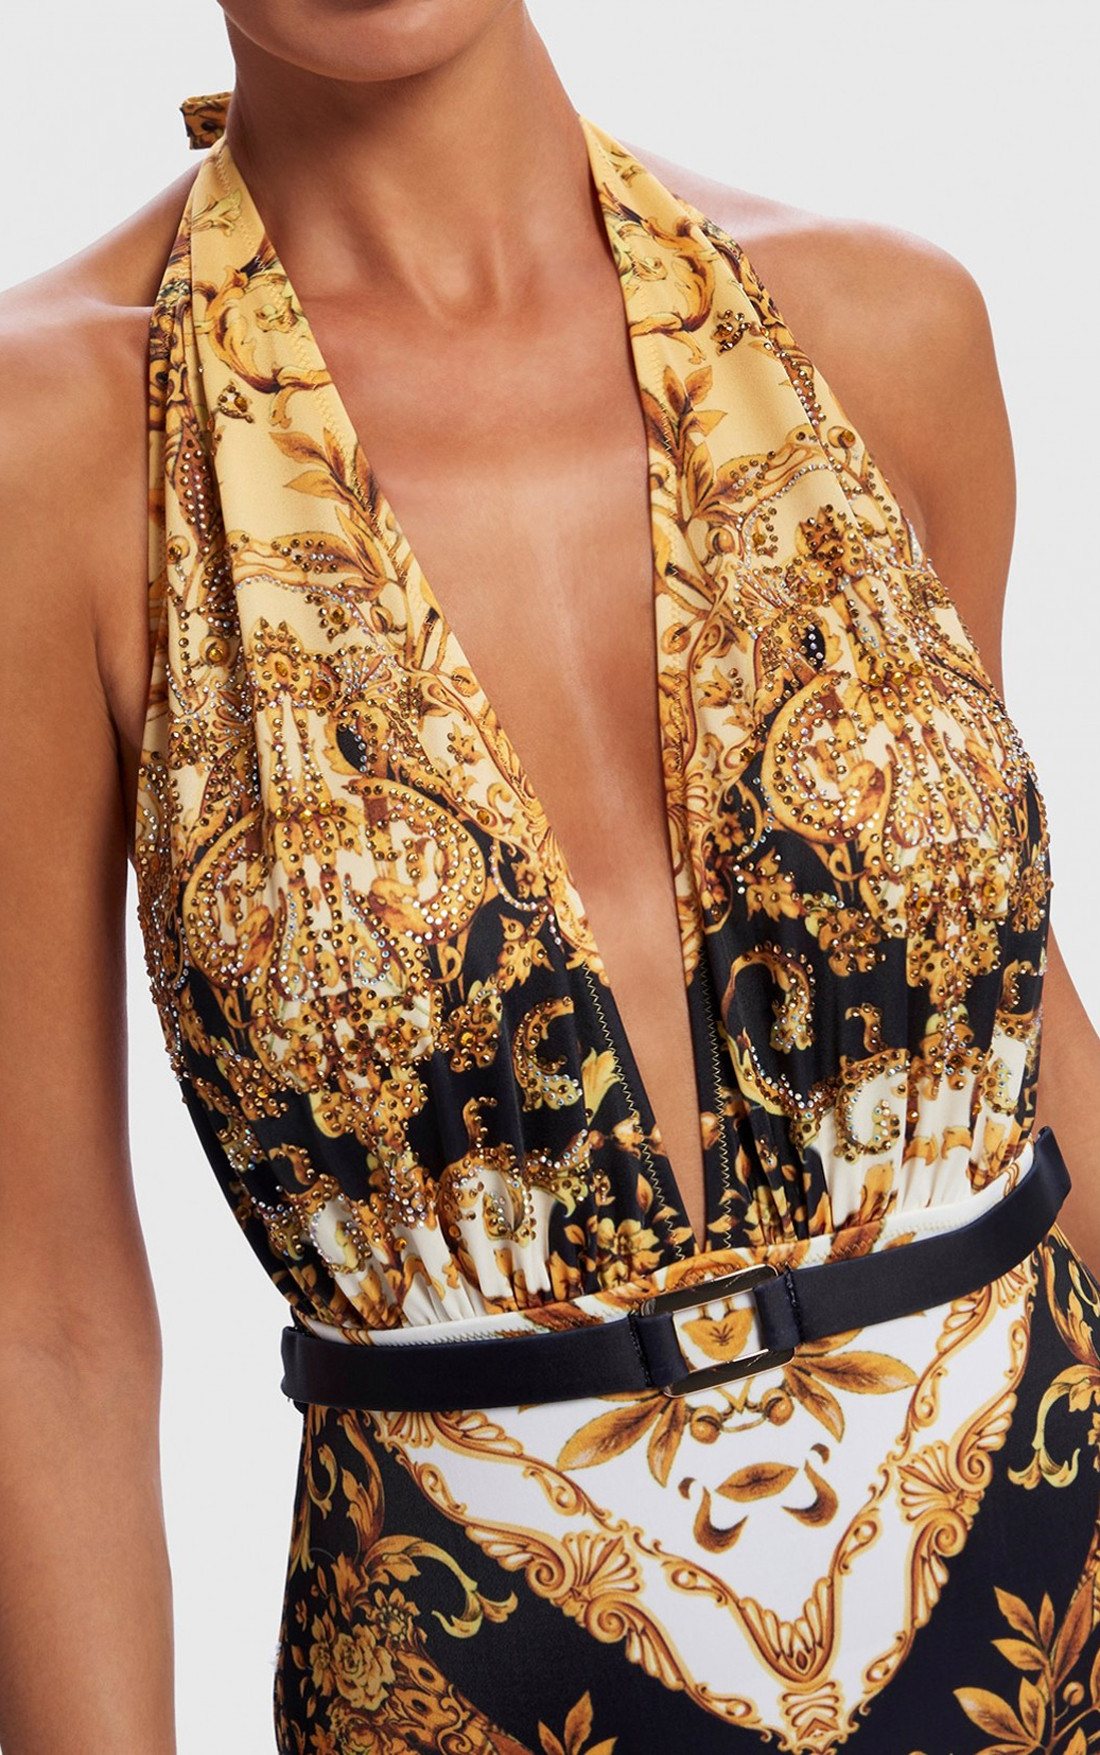 c3dd4bf411 ... Forever Unique - Nolana Black And Gold Baroque Print Plunge Neck  Swimsuit With Belt (AF1709 ...